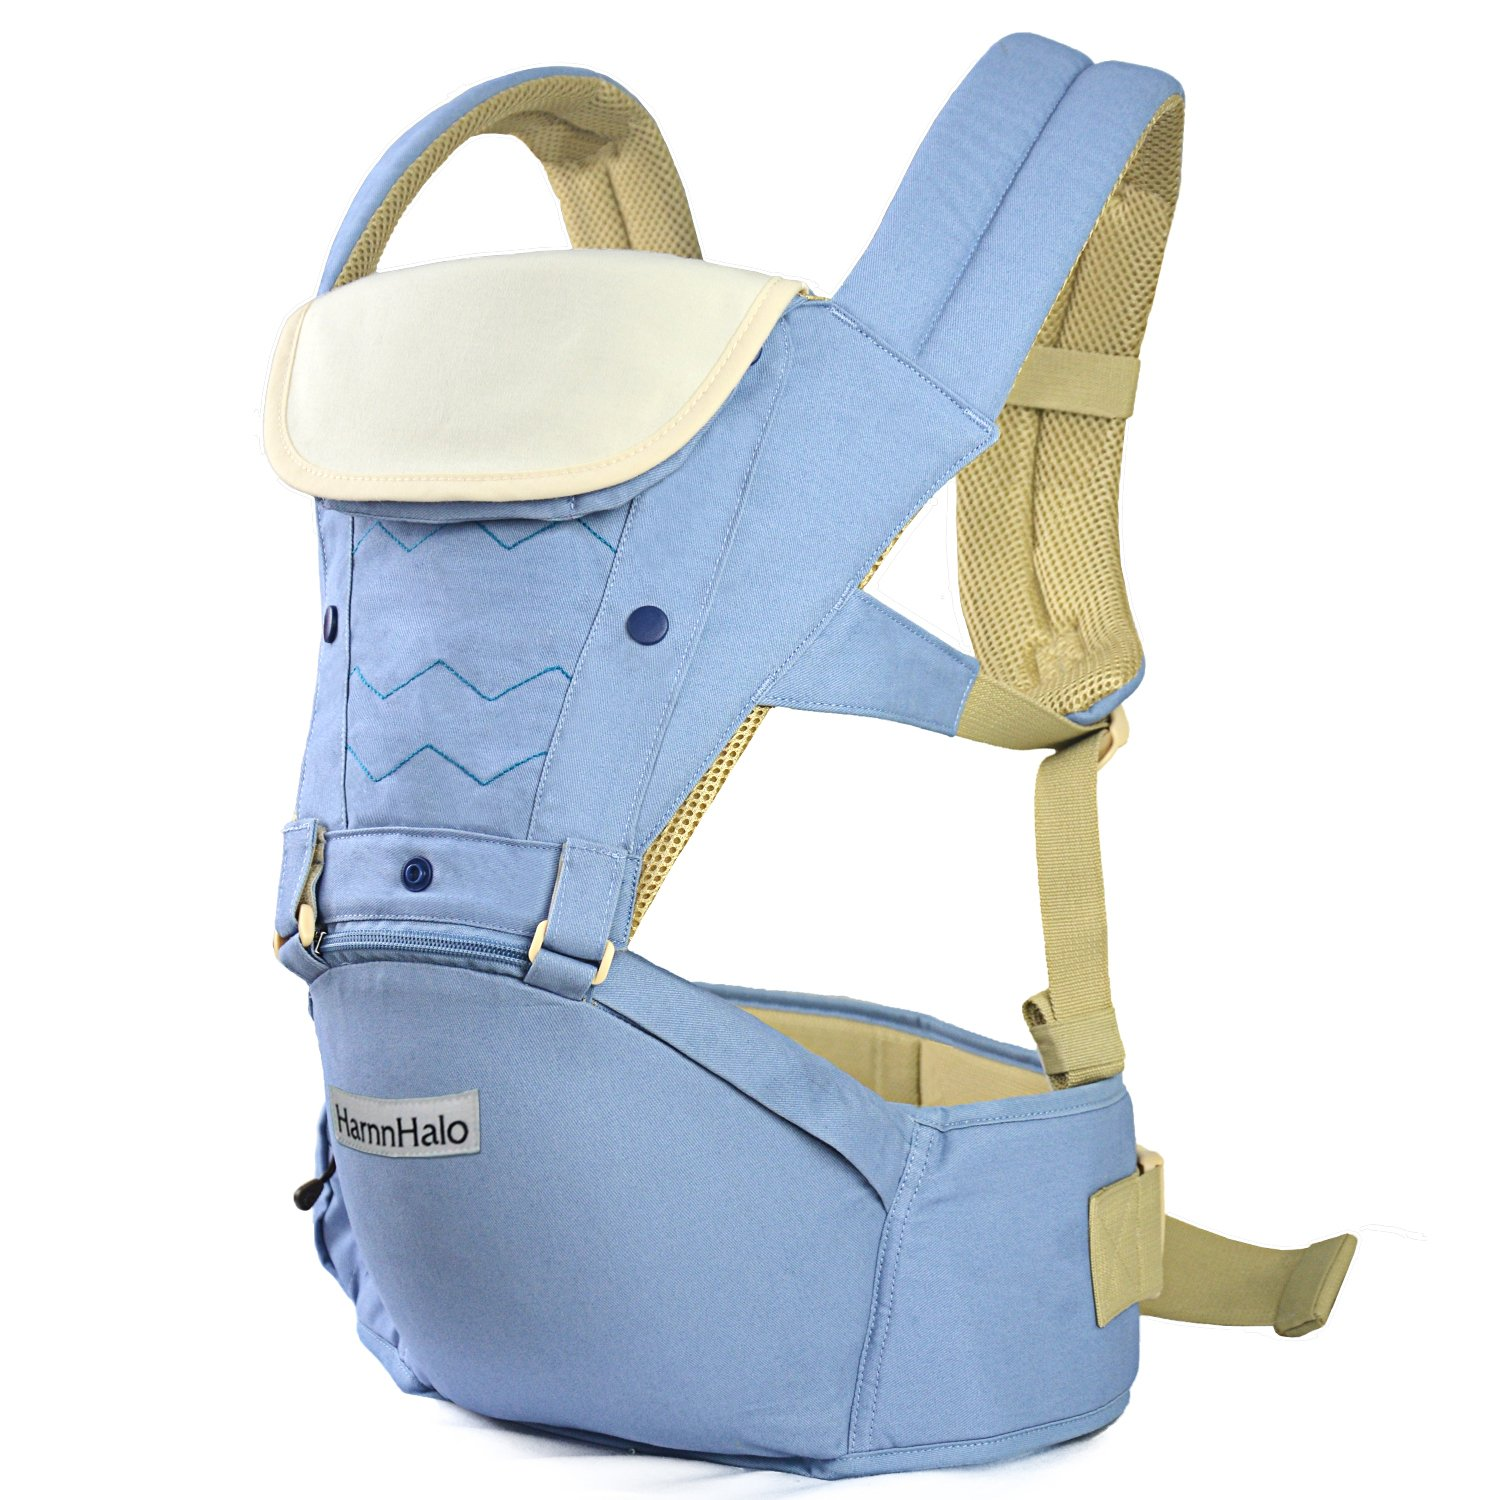 HarnnHalo Adjustable 4 in 1 Baby Carrier with Hip Seat M10 Blue